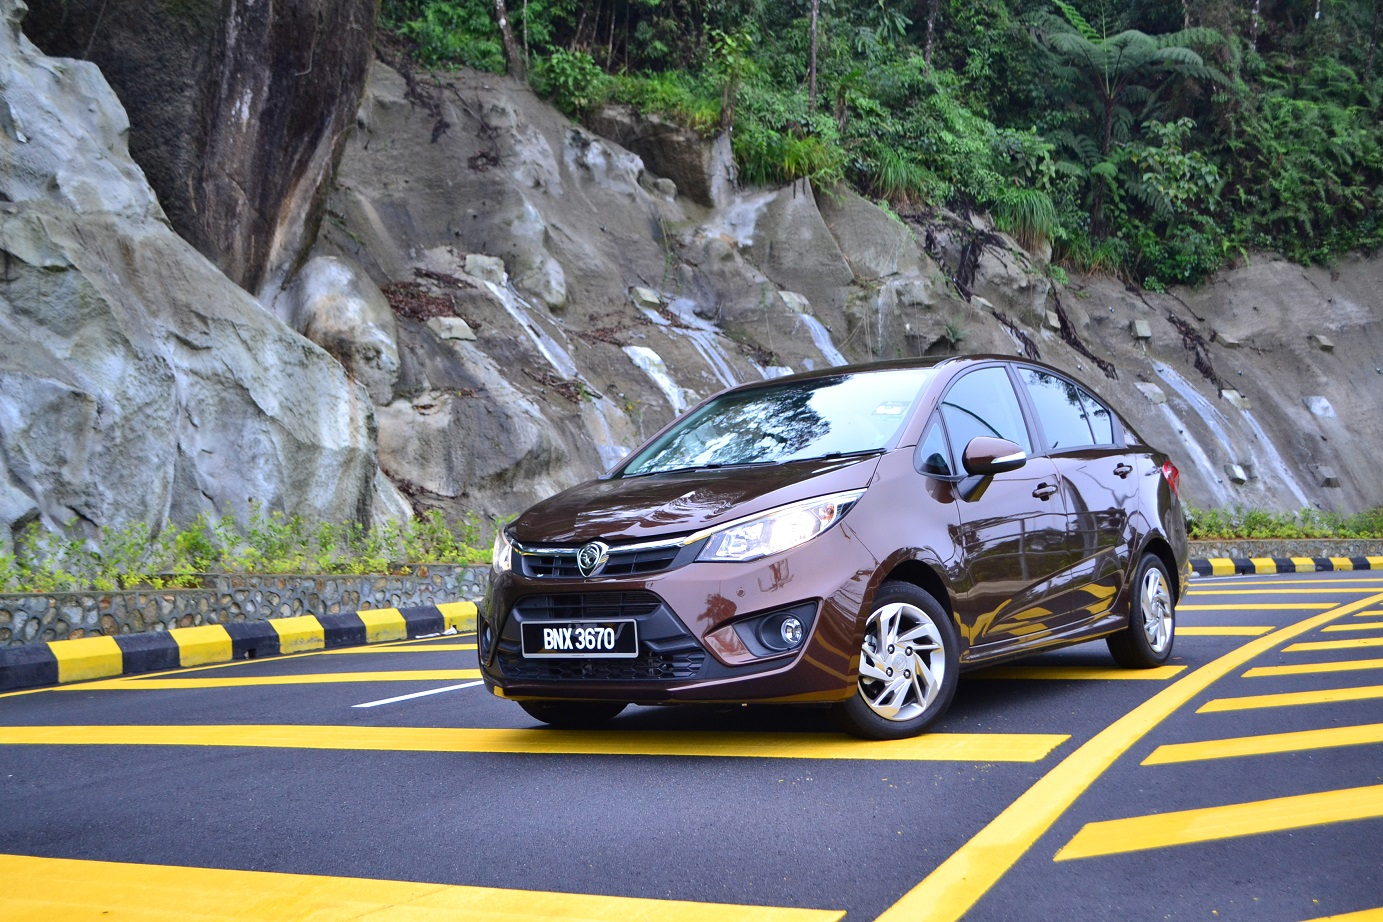 The all-new Proton Persona - Test Drive Review - kensomuse